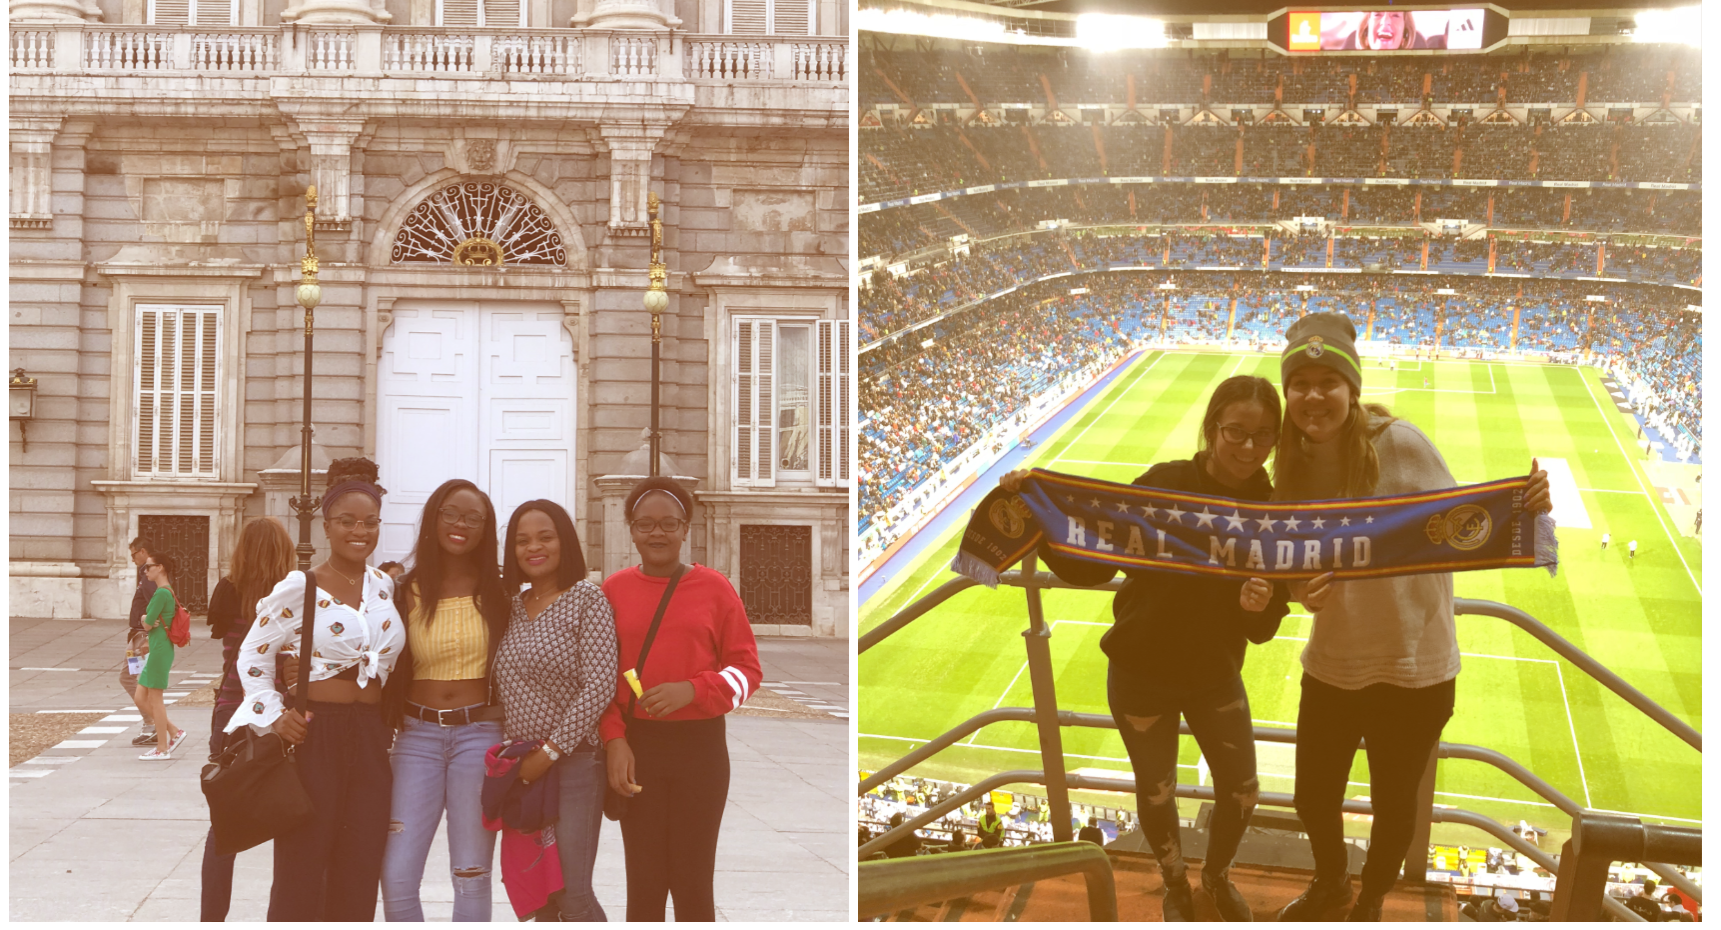 Images of students outside Royal Palace in Madrid and students at a Real Madrid soccer game